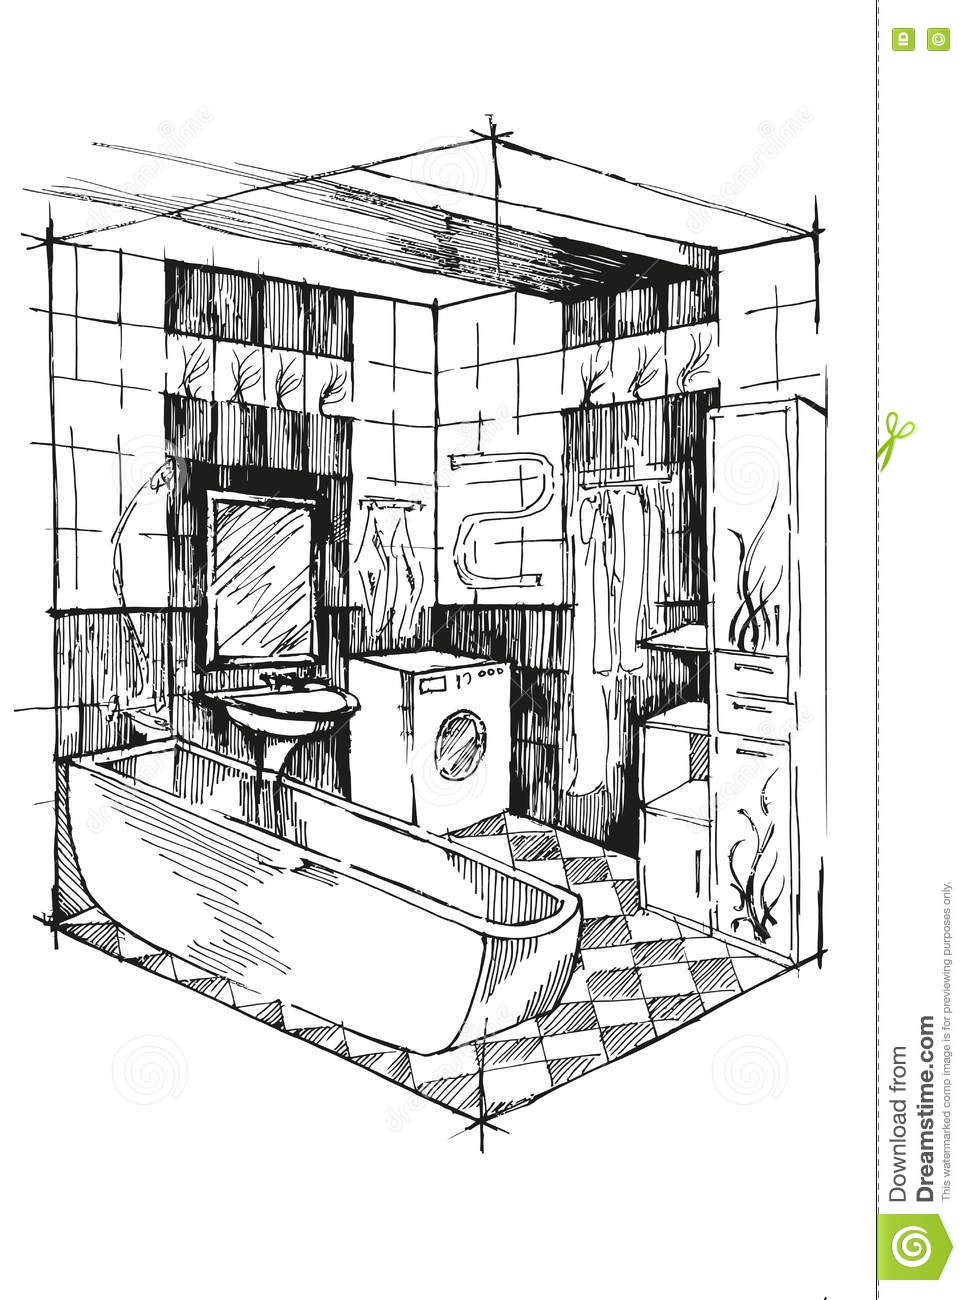 Bathroom sink drawing - Sketch Bathroom Interior Perspective Bathroom With Sink Washing Machine And Cupboards